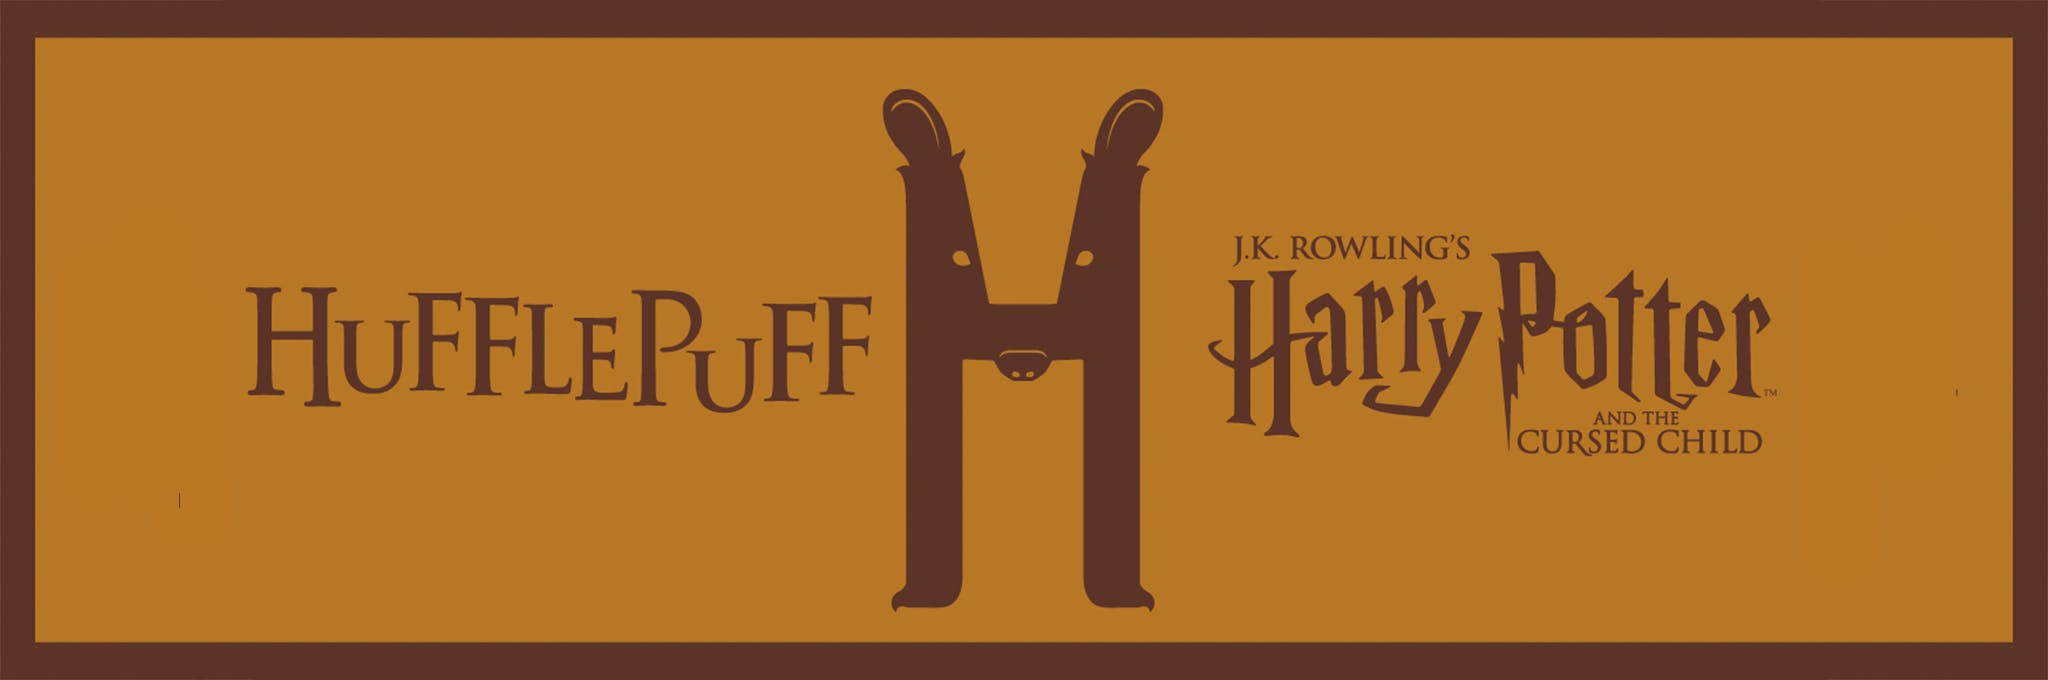 Harry Potter and the Cursed Child - Hufflepuff Lottery Logo